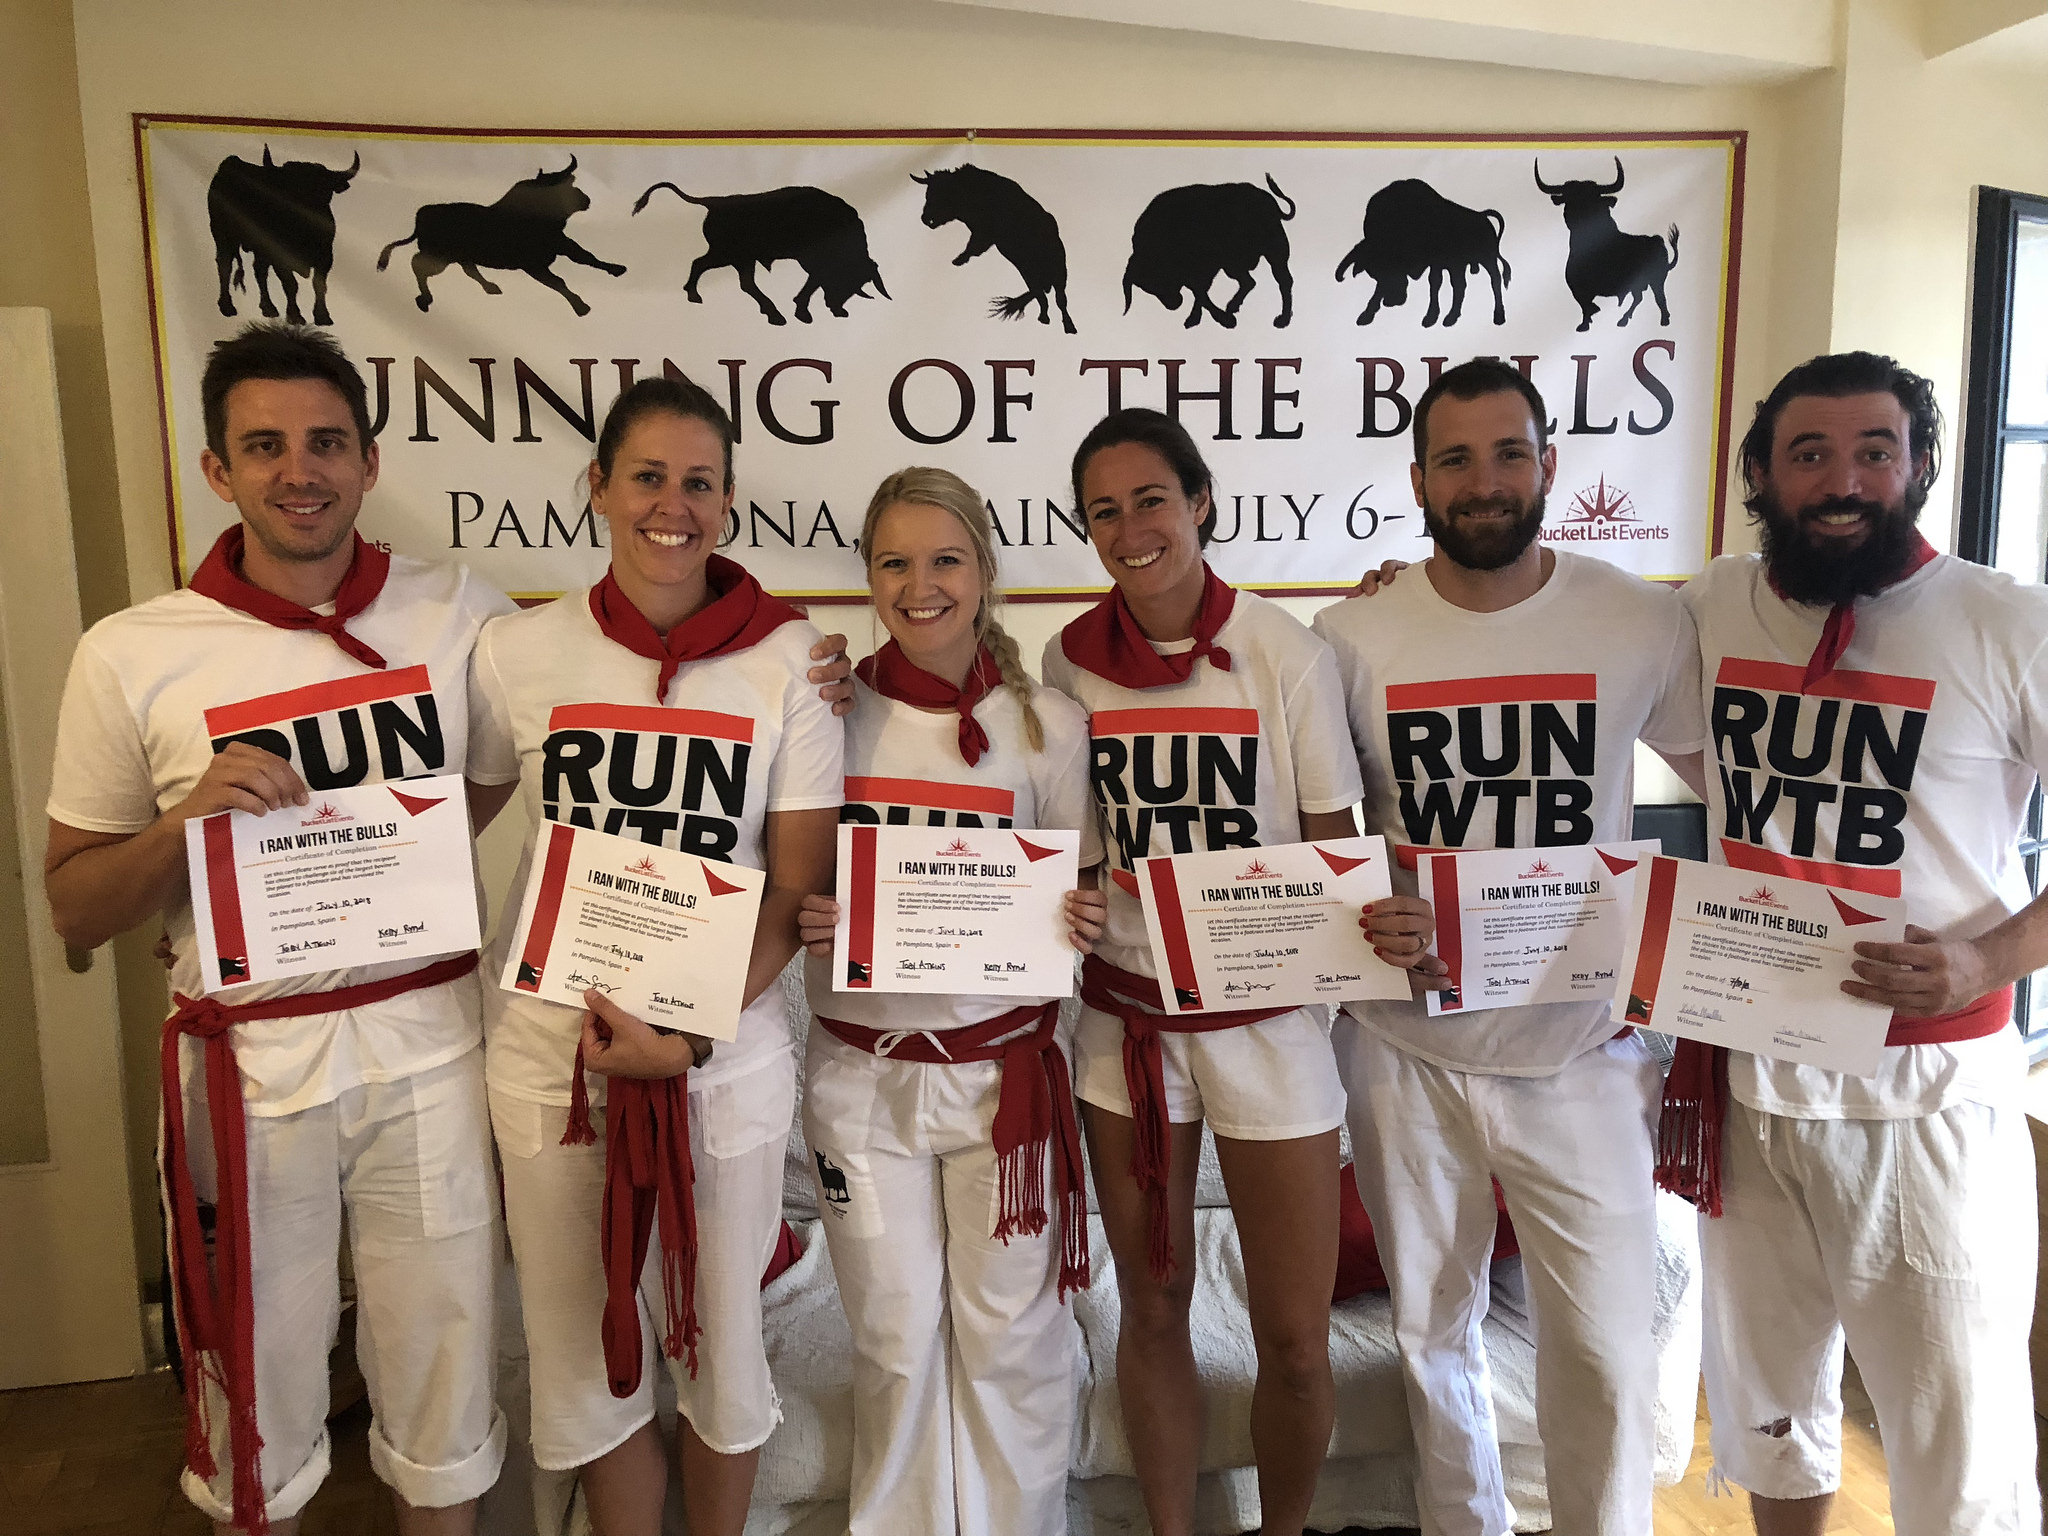 is running with the bulls dangerous